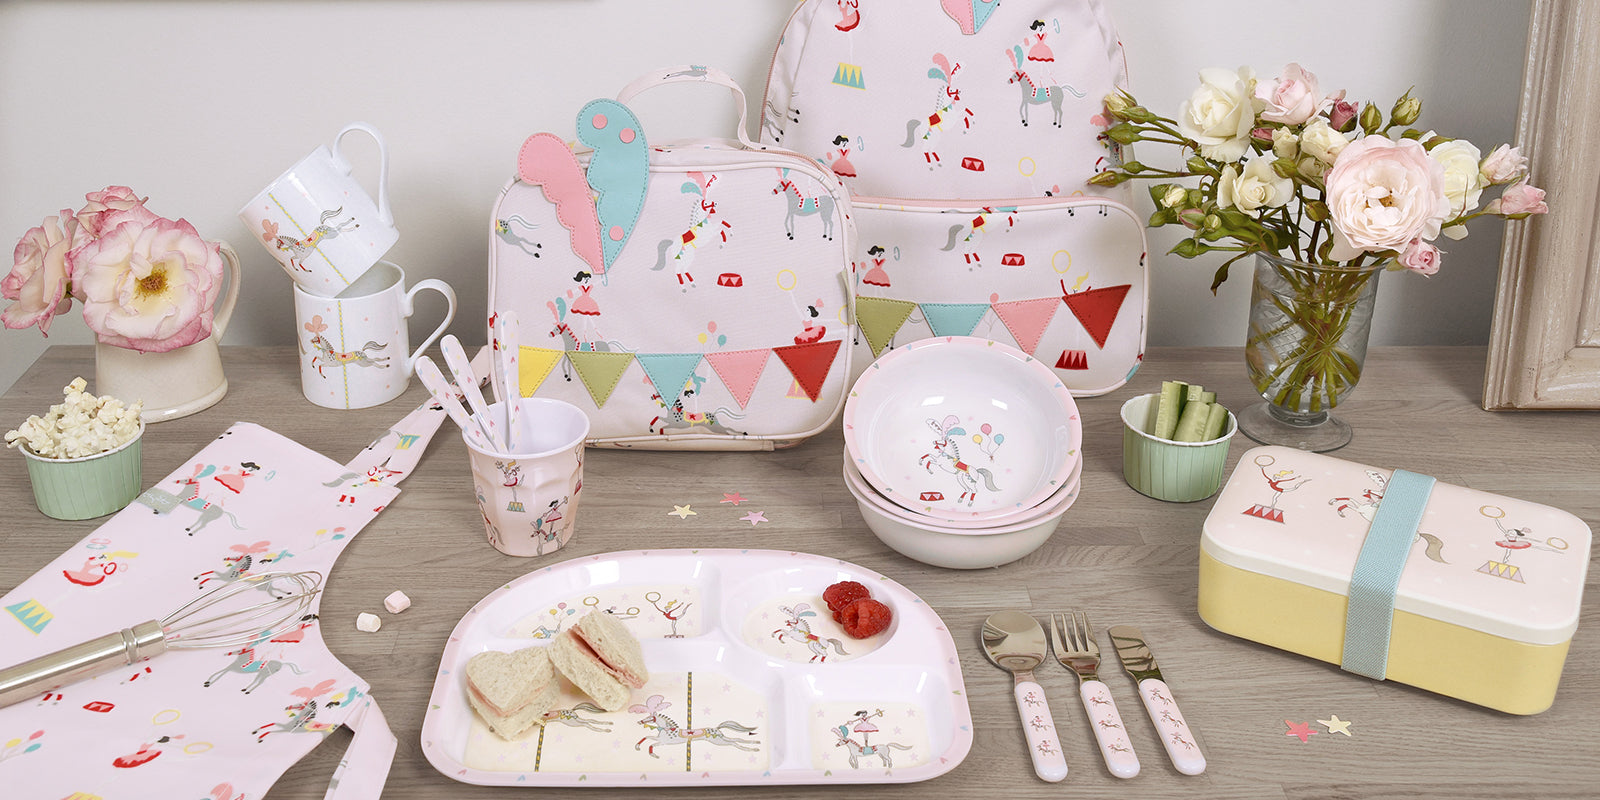 Kid's homewares and accessories by Sophie Allport